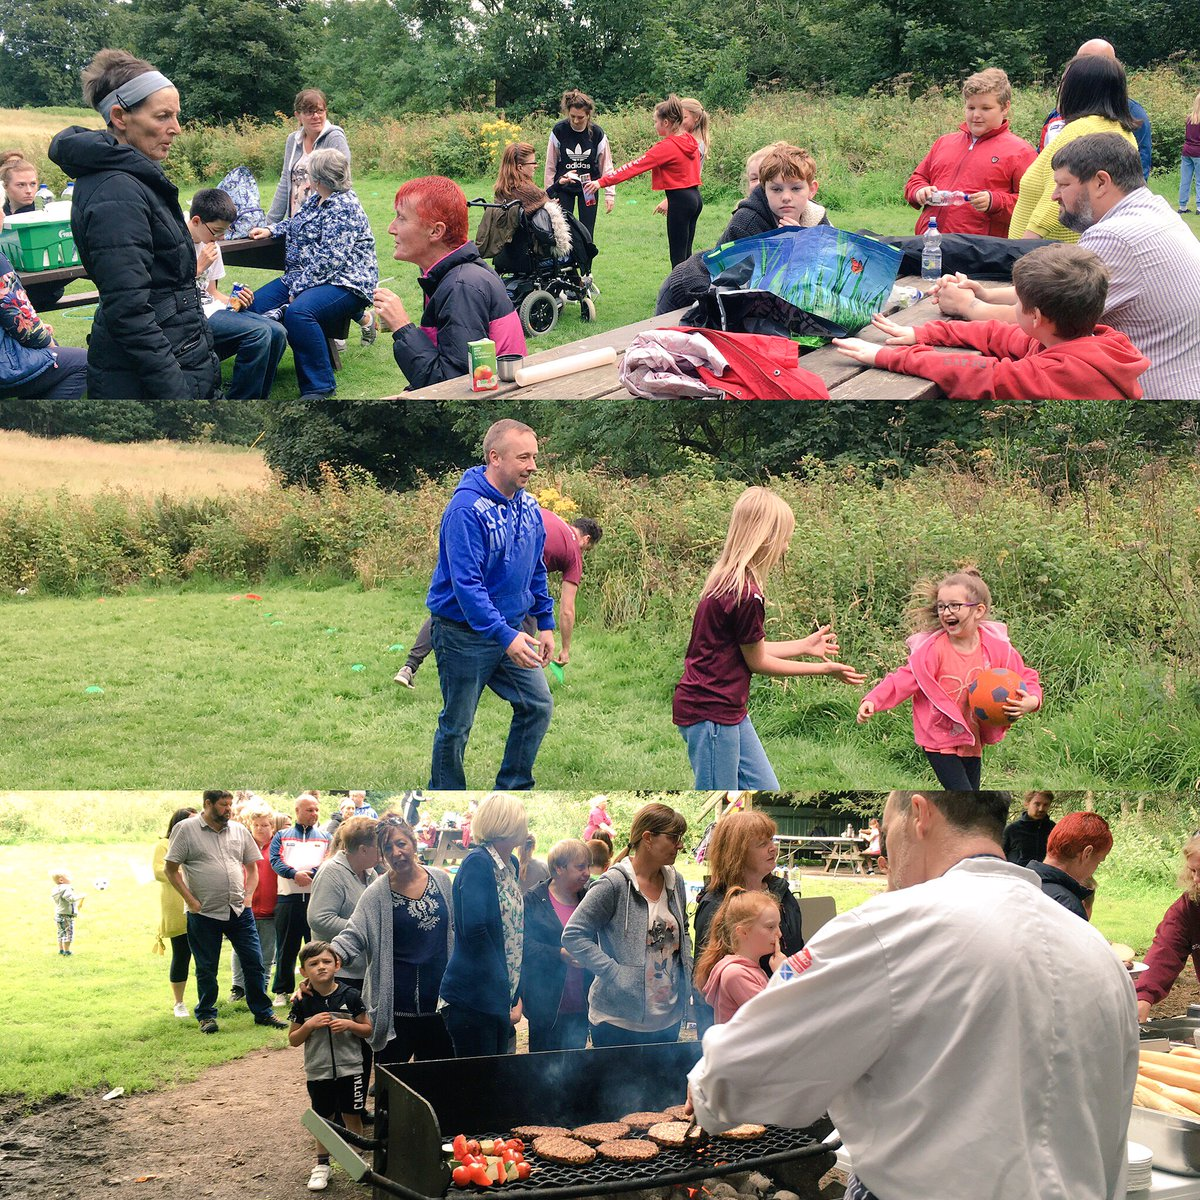 We are at Vogrie country park for our first #kinshipcare #family #barbecue! @bighearts @MentorScotland<br>http://pic.twitter.com/rpMsLJVKta &ndash; bij Vogrie Country Park